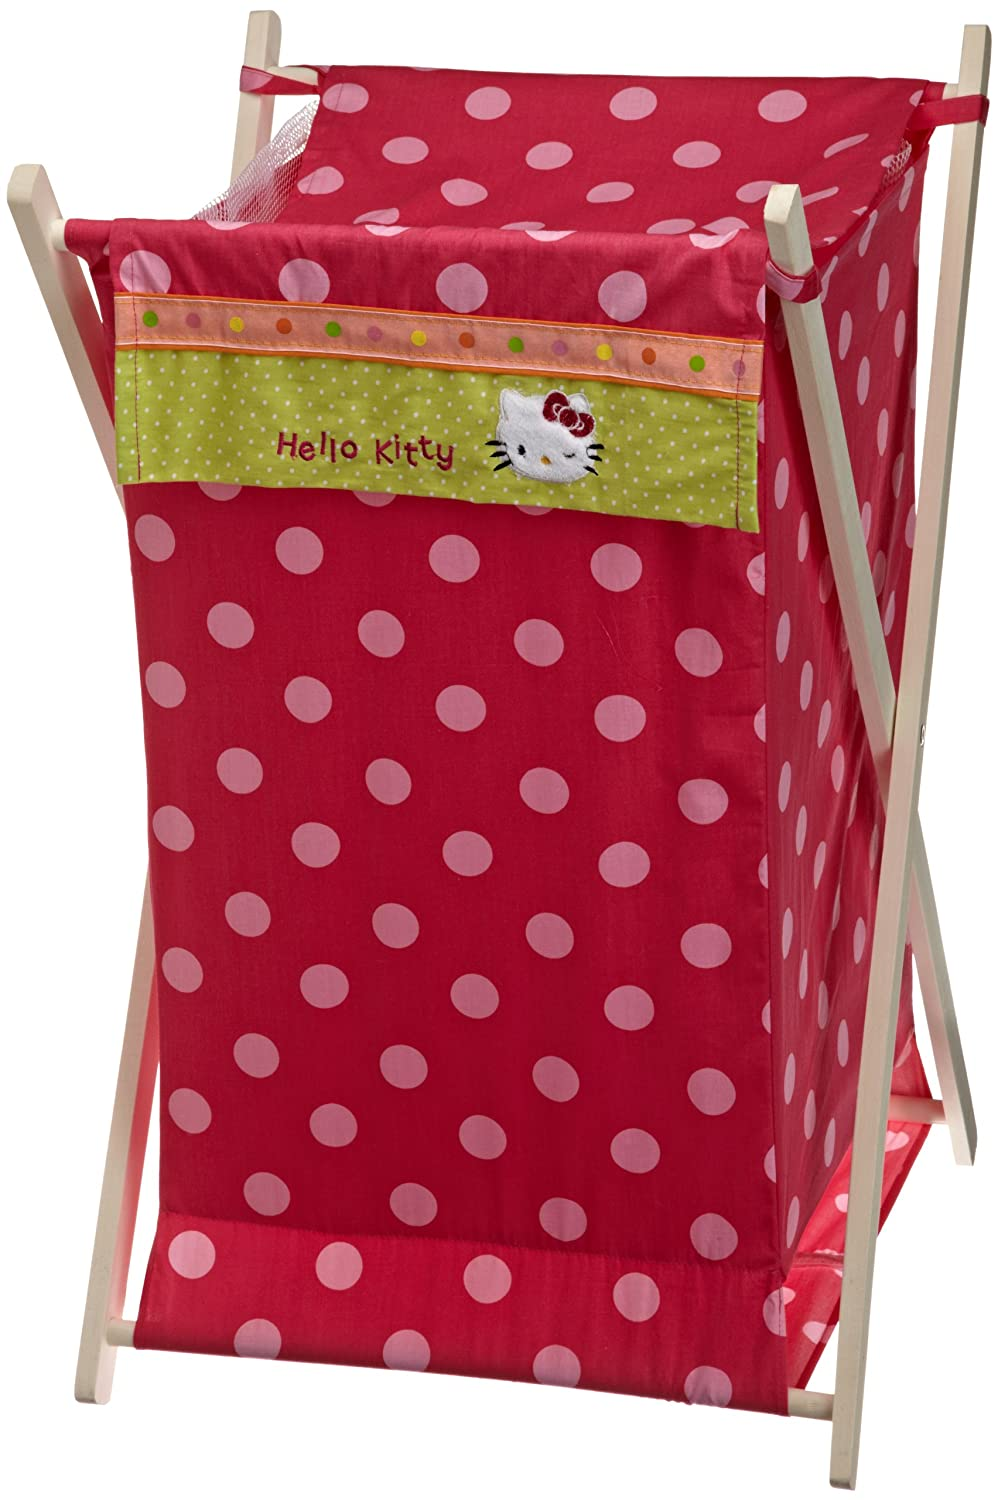 hello kitty garden crib bedding and accessories baby. Black Bedroom Furniture Sets. Home Design Ideas